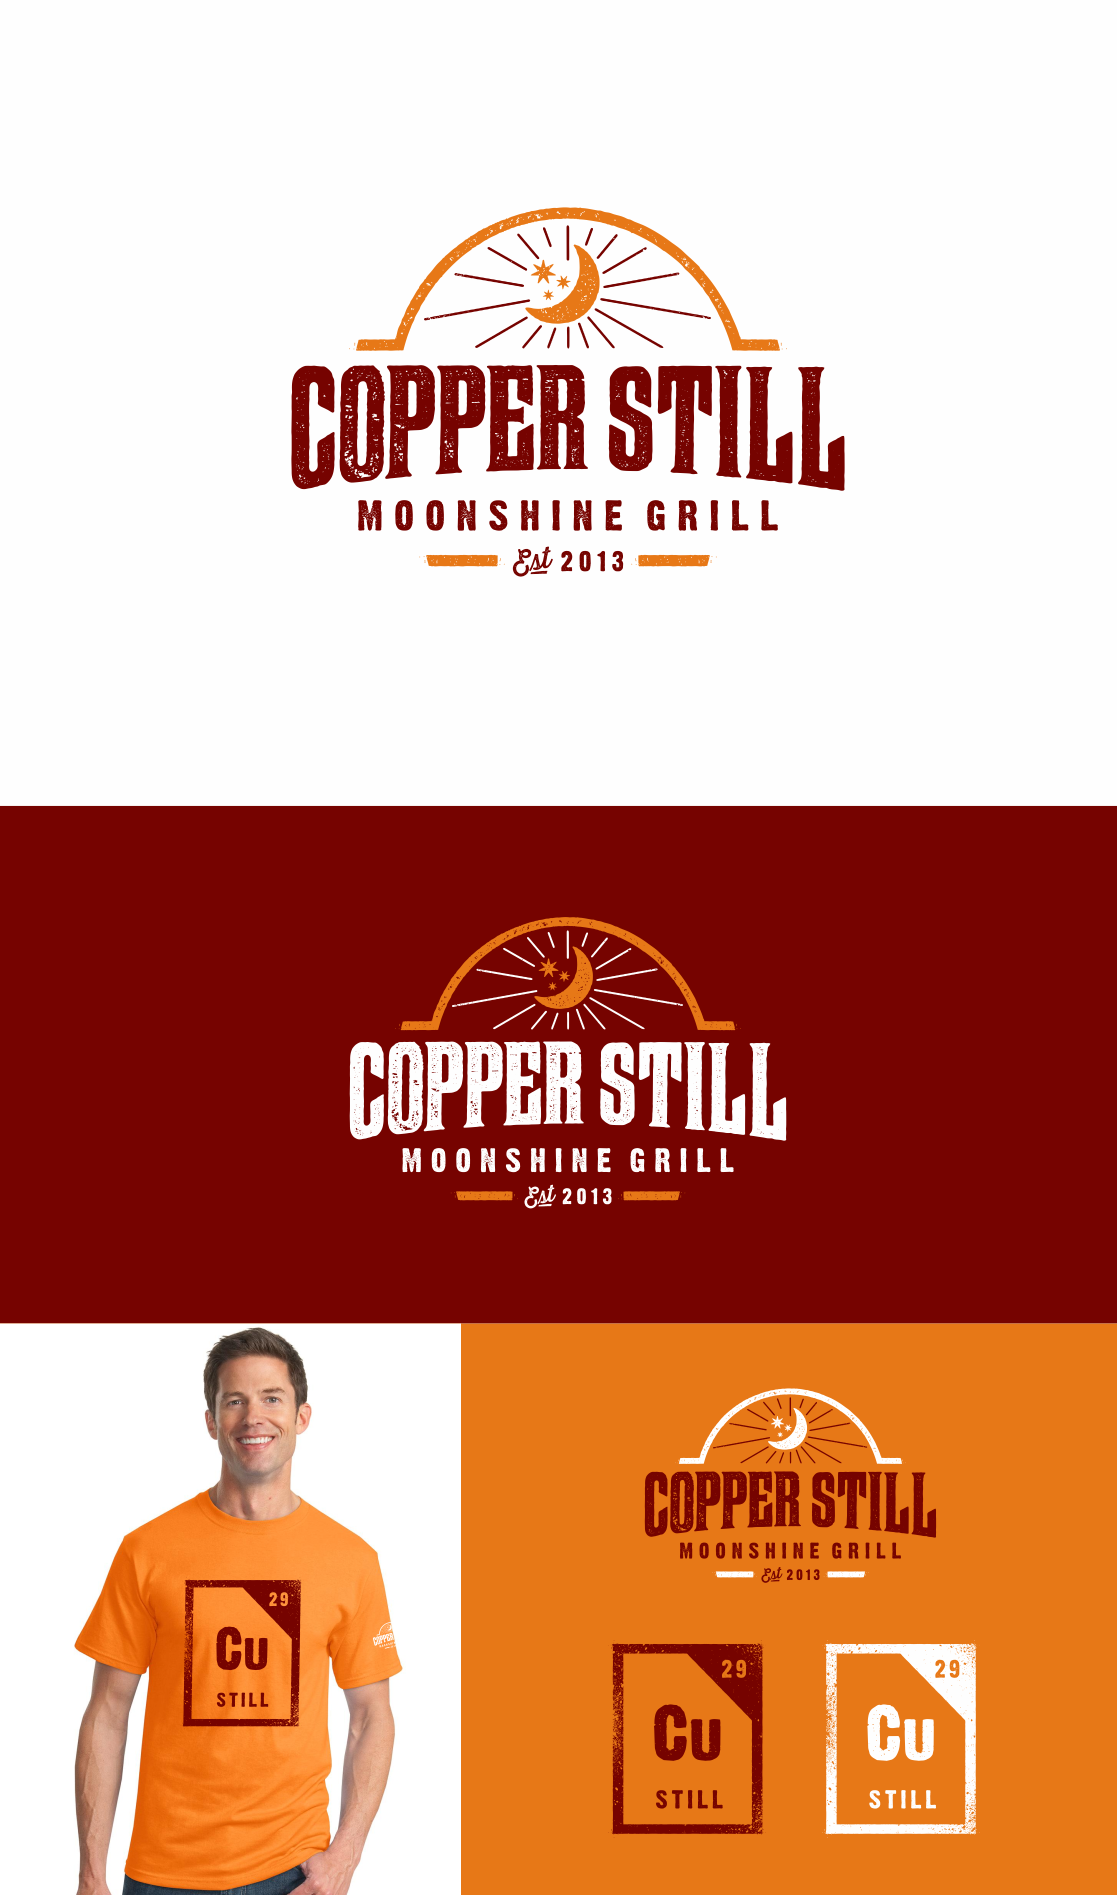 Help Copper Still - Moonshine Grill with a new logo